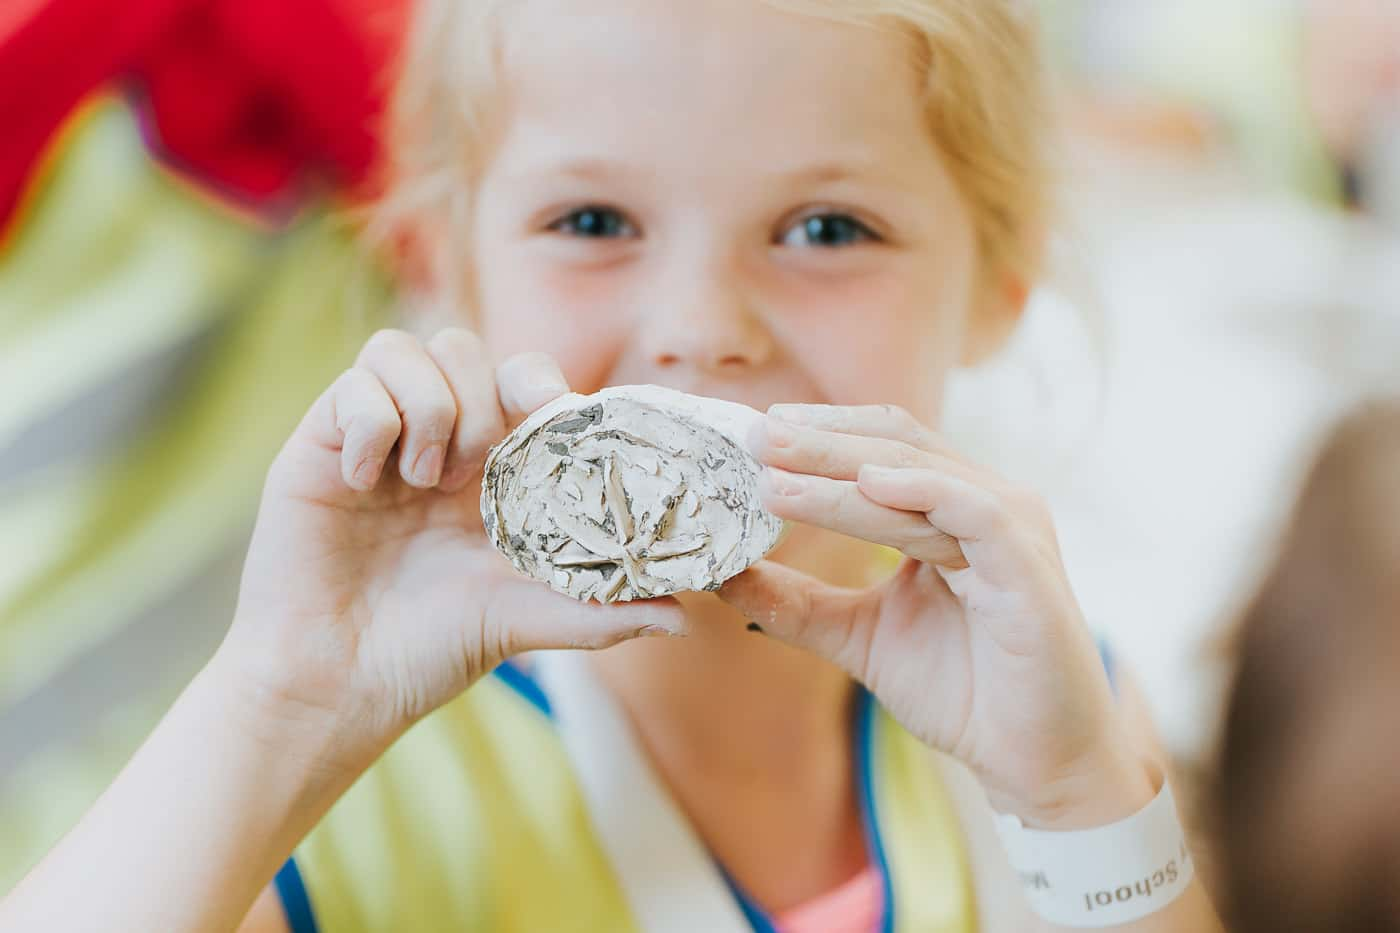 A girl holding up the clay item she has made